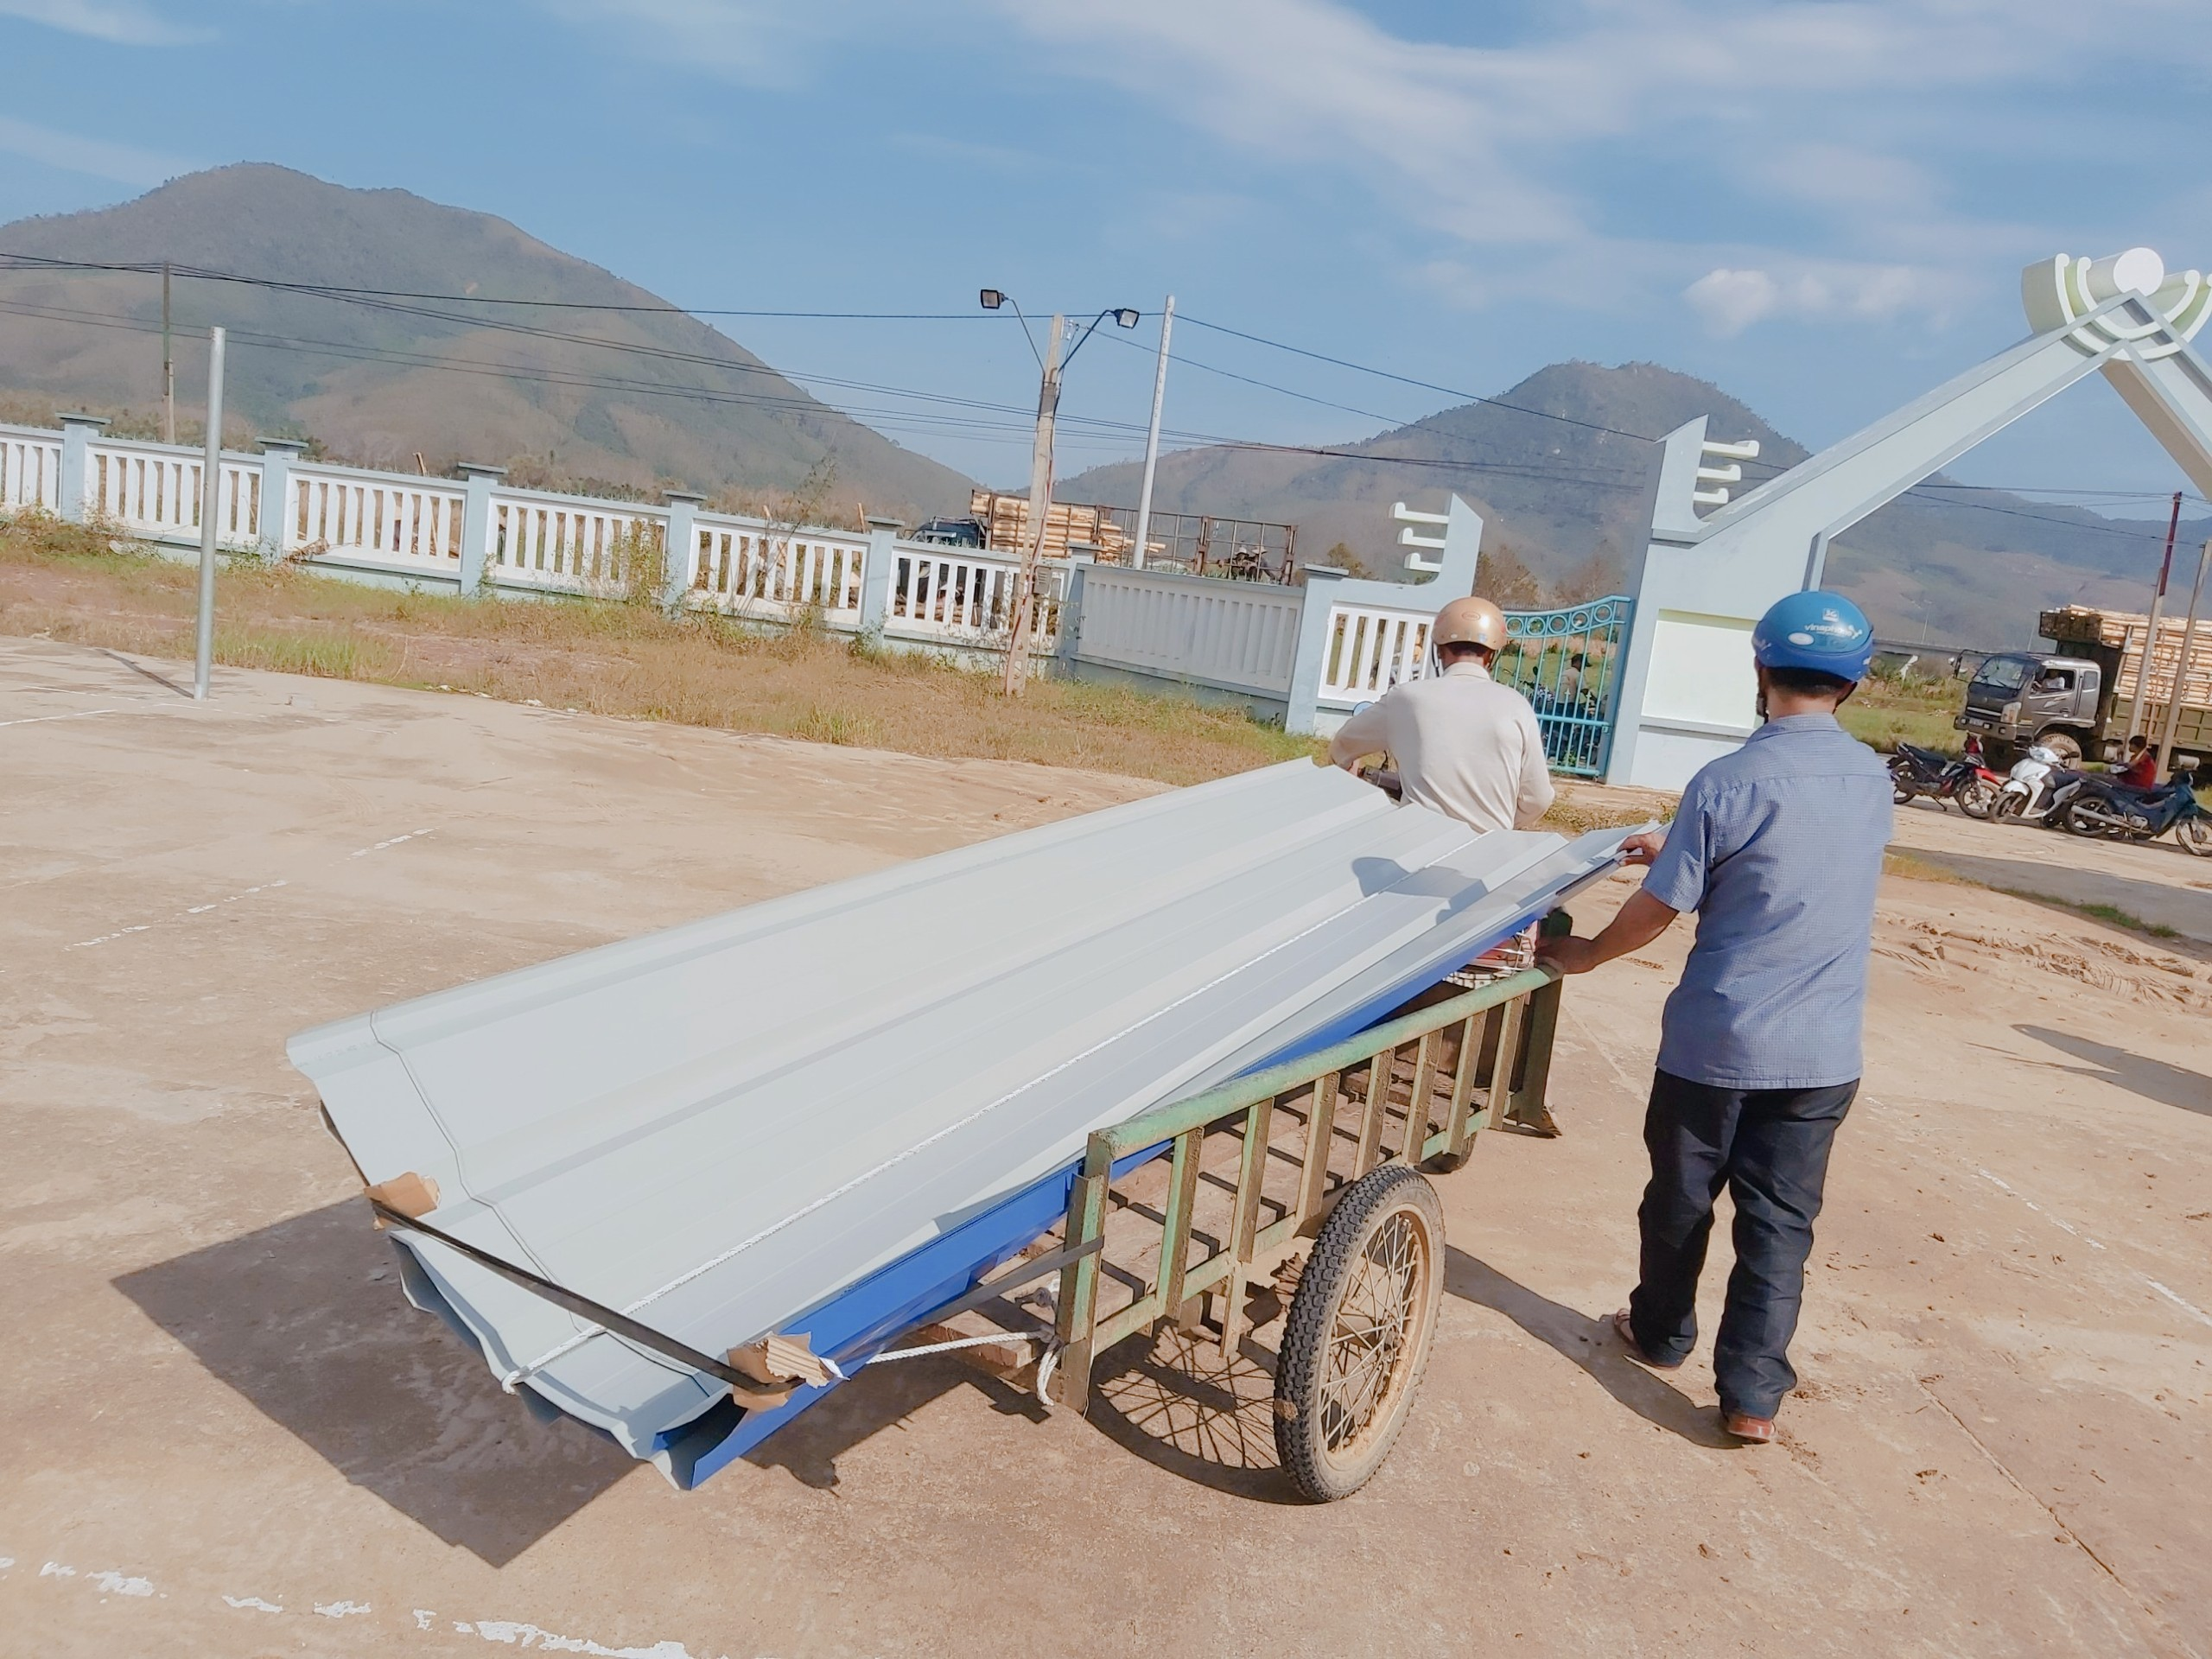 ATAD awarded roofing sheet to help the Vietnam Central Region people affected by natural disasters